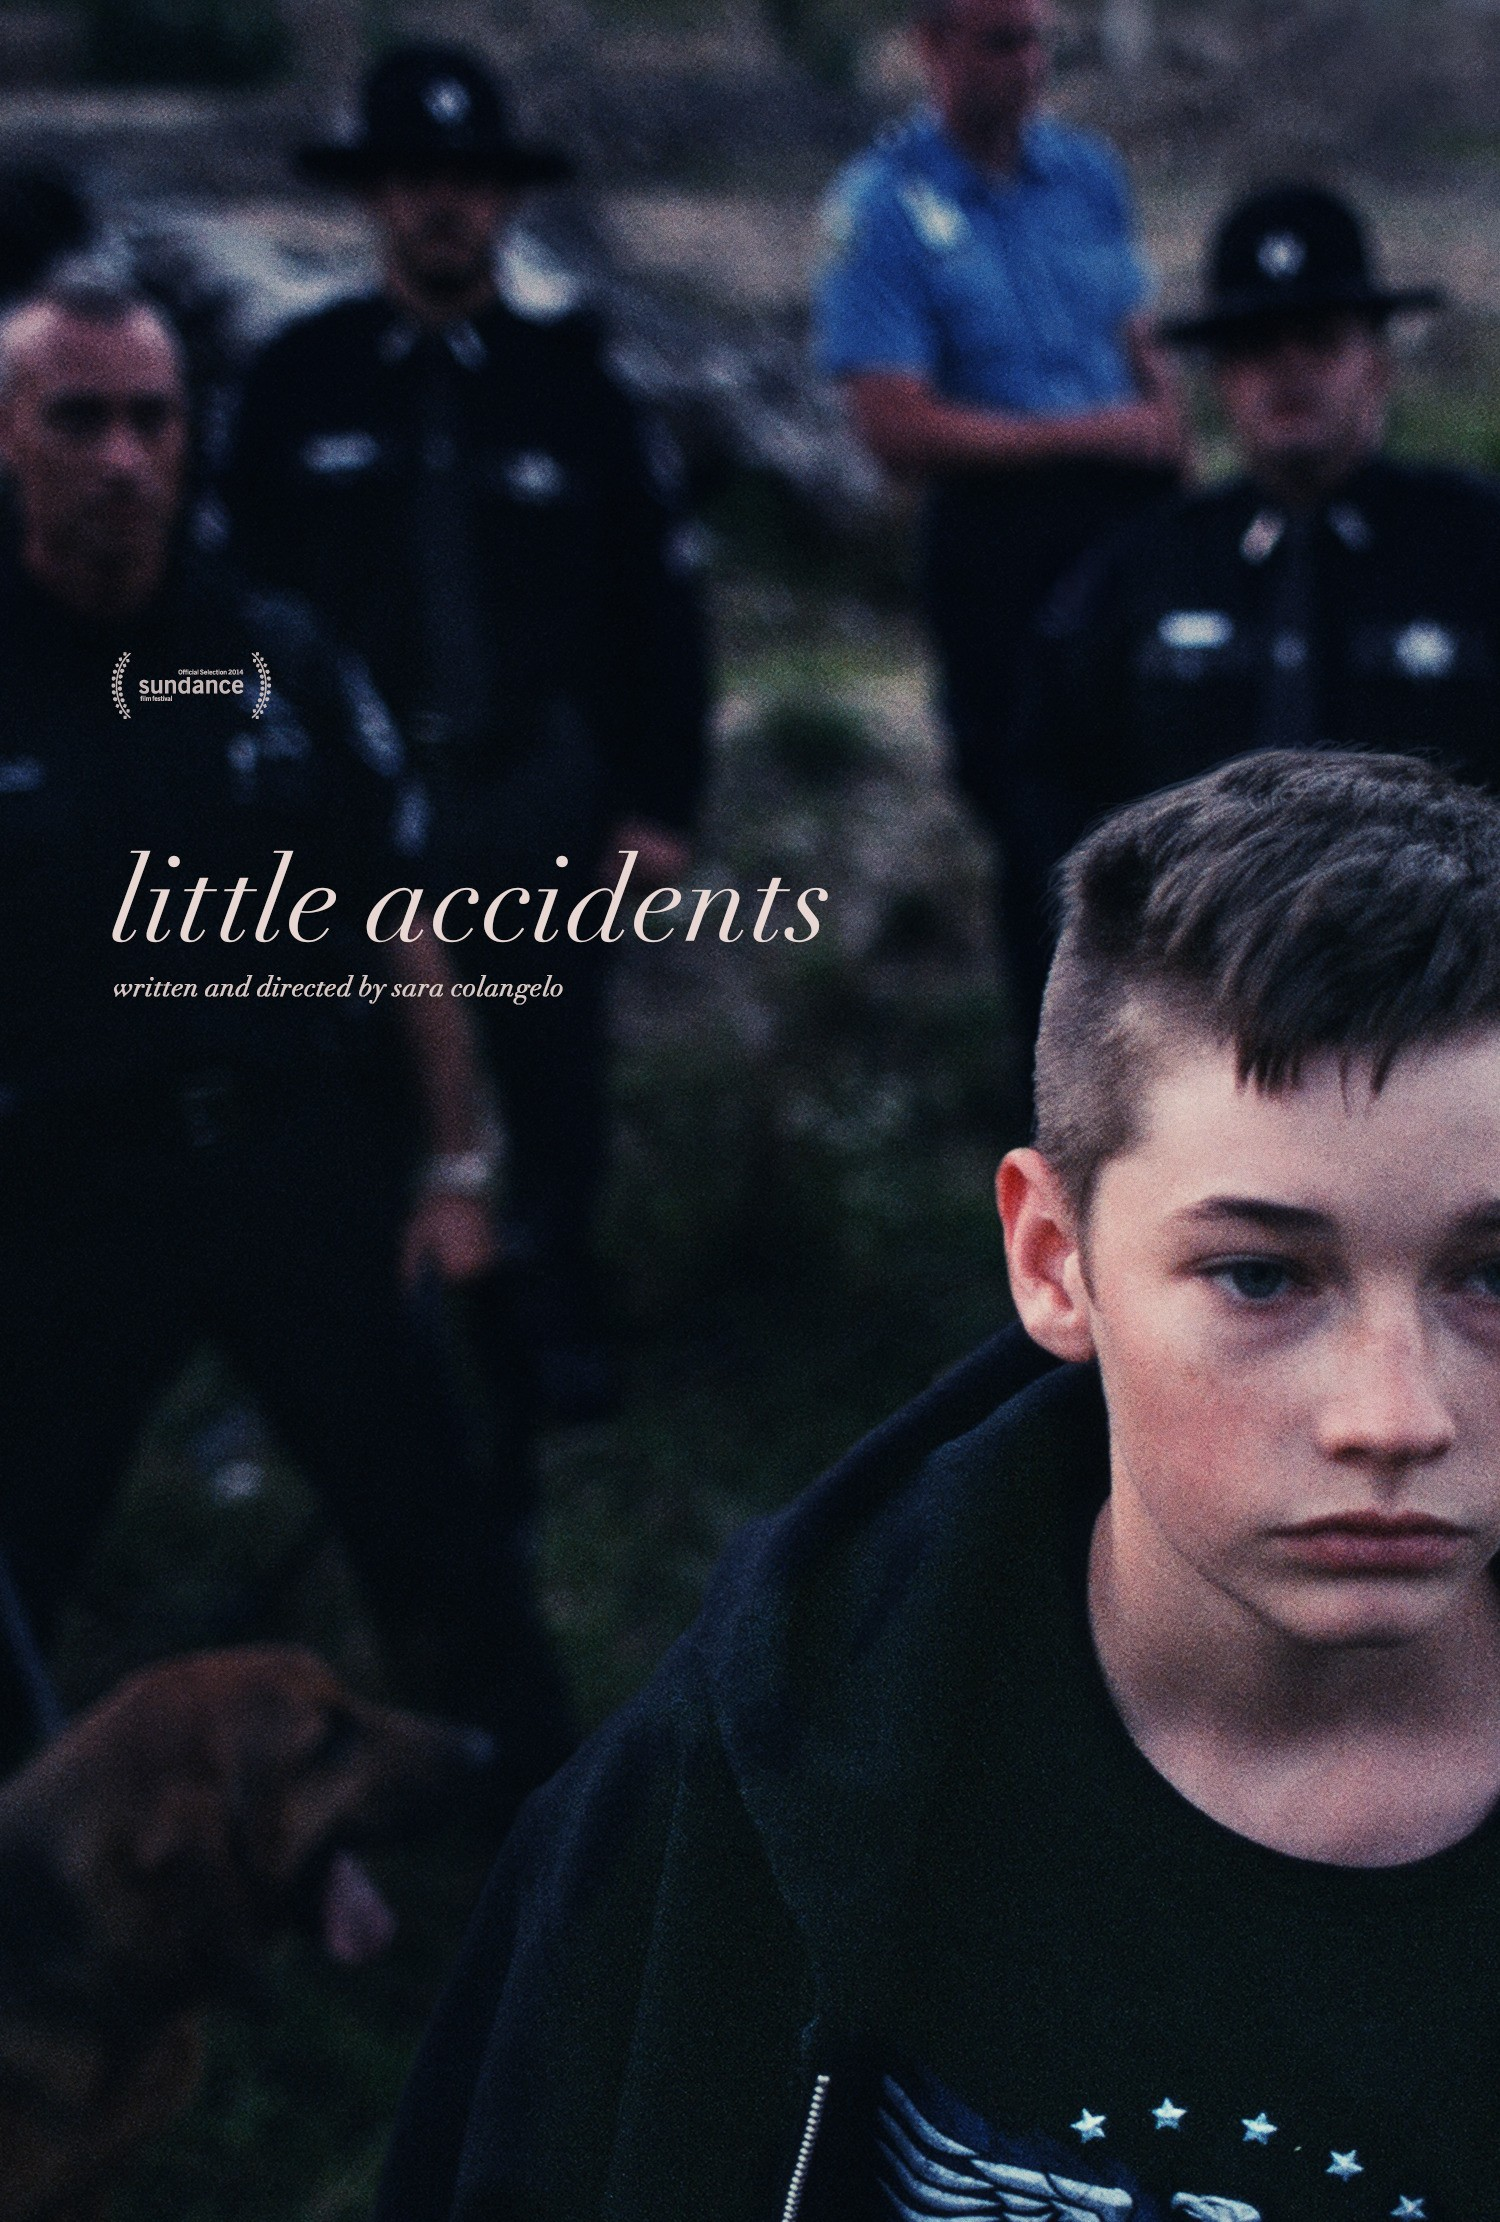 LITTLE ACCIDENTS-Official Poster Banner PROMO POSTER XXLG-28JANEIRO2014-04